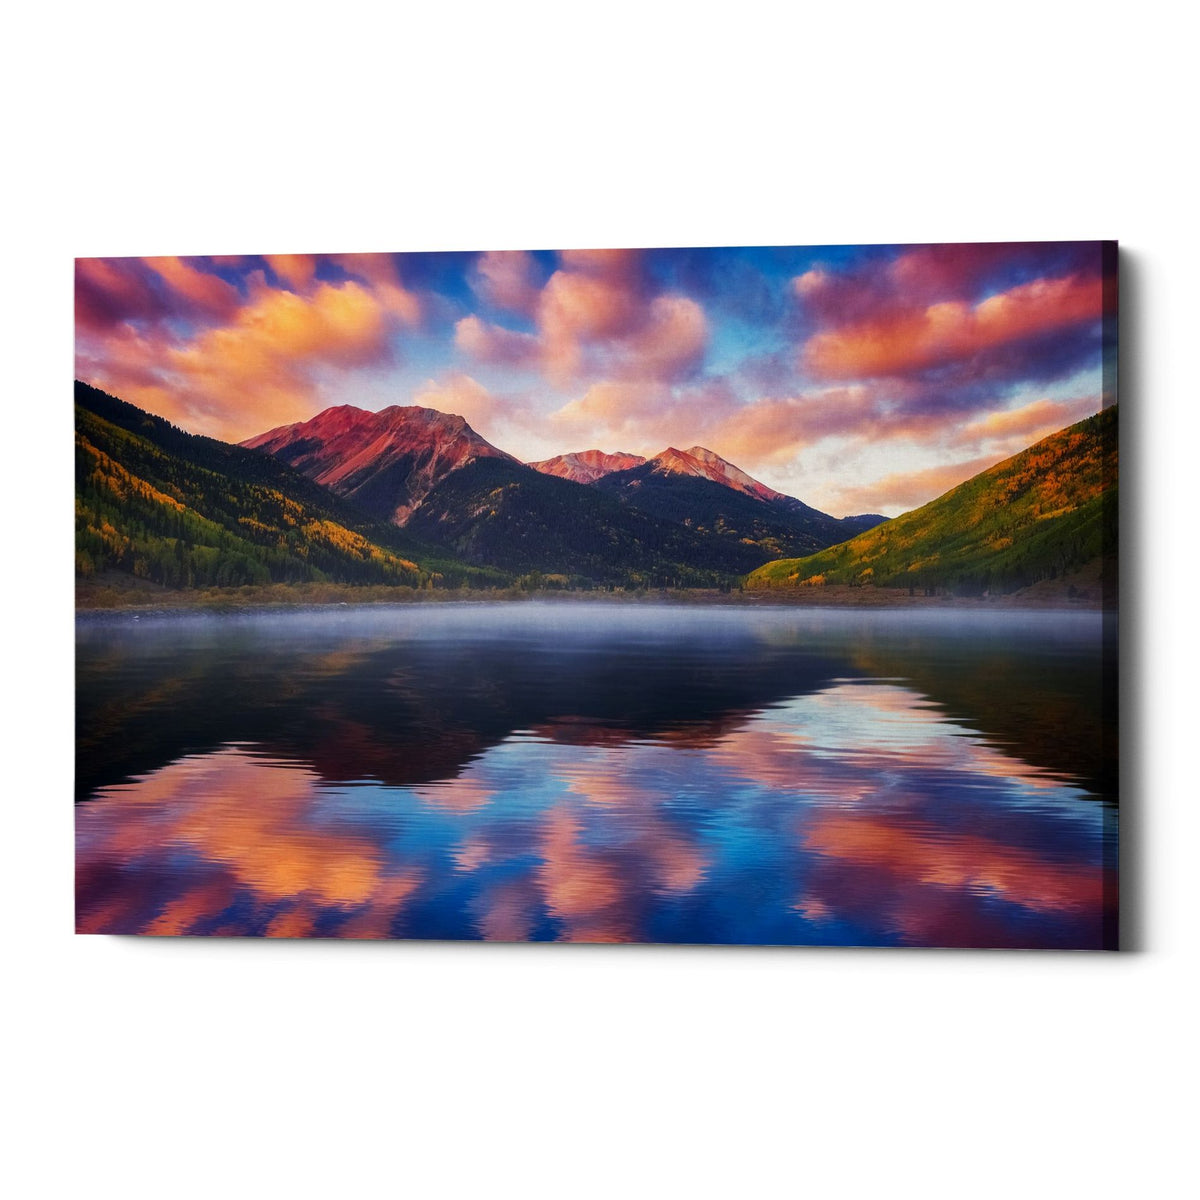 "Epic Graffiti ""Red Mountain Reflections"" by Darren White, Giclee Canvas Wall Art"